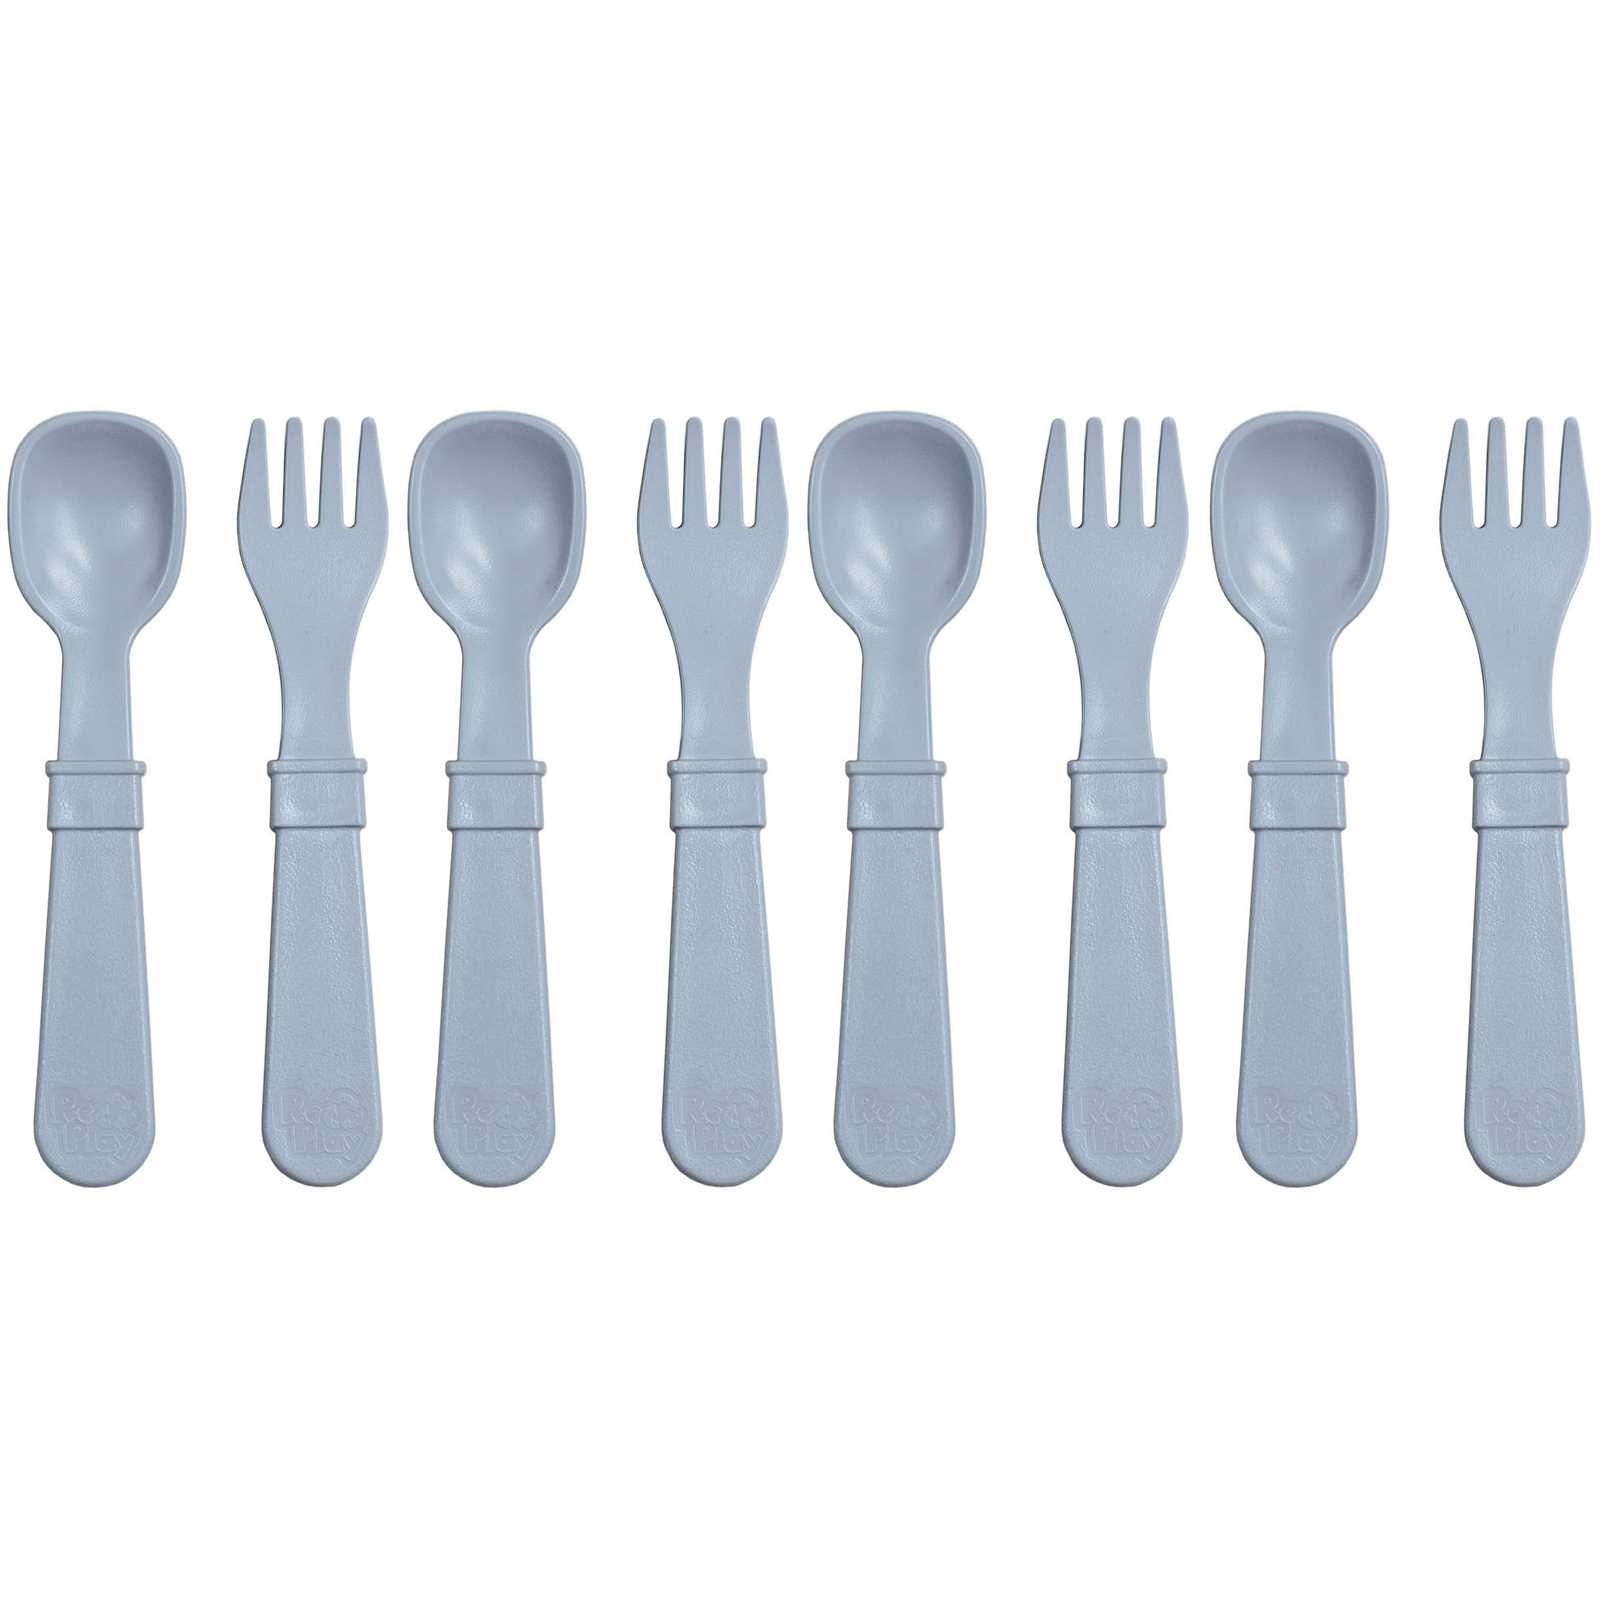 Re-Play 8 Utensils - Grey